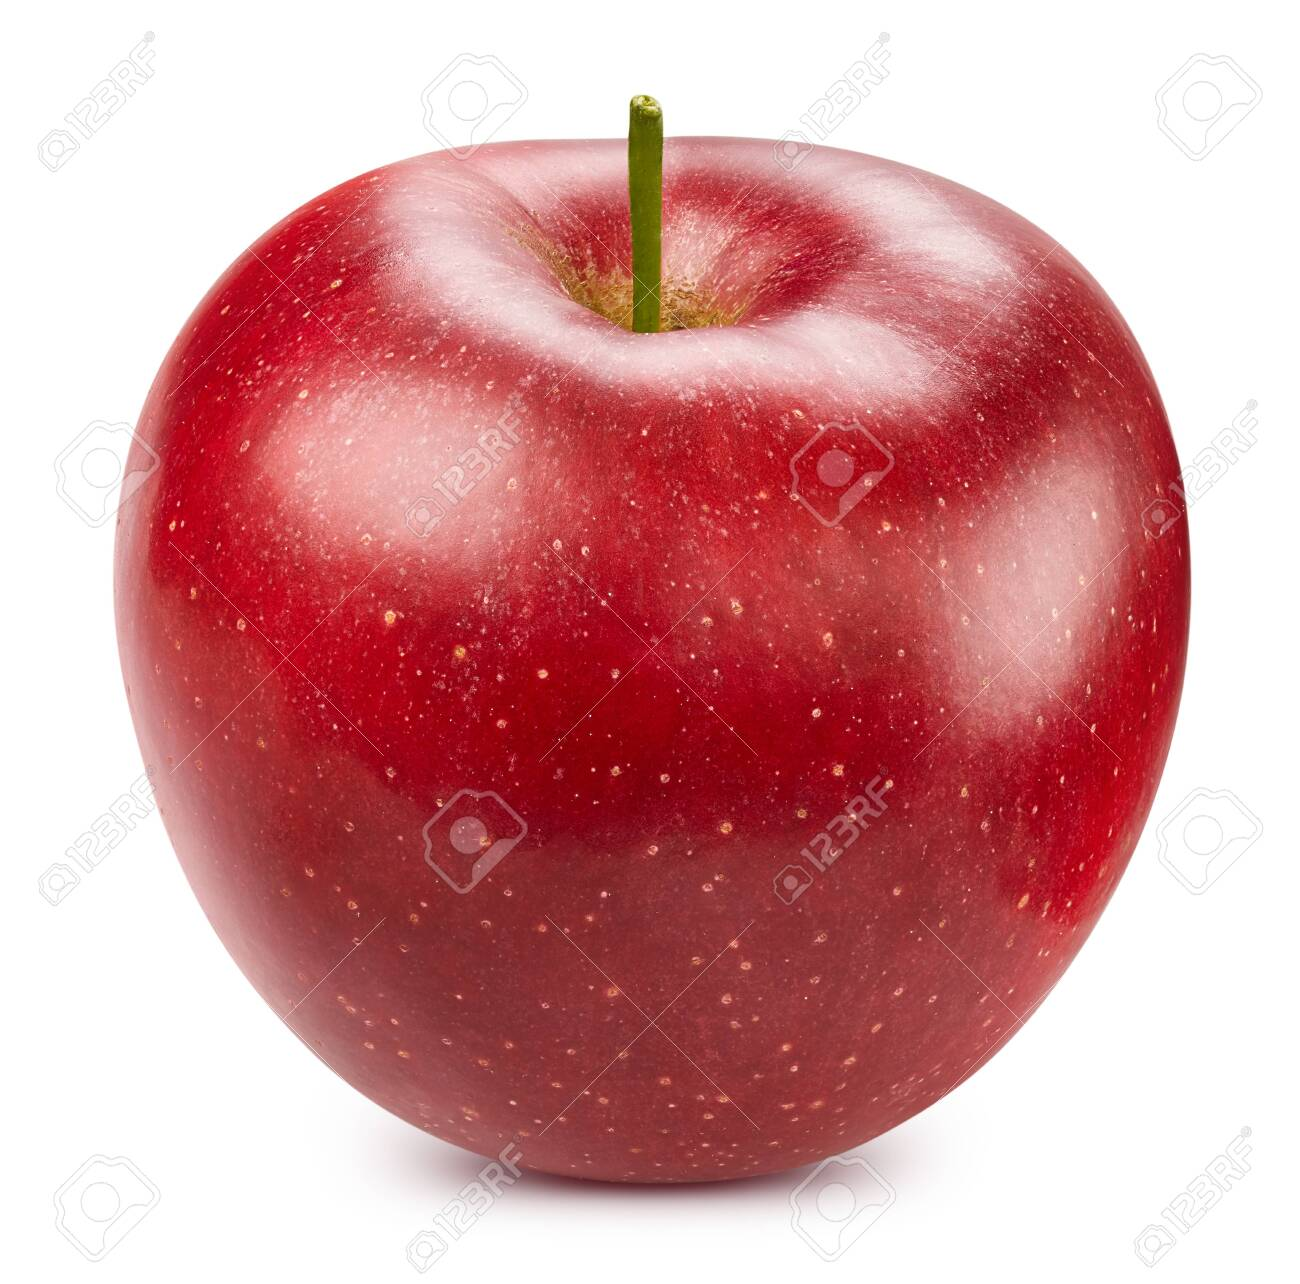 Red apple isolated on white - 128618034